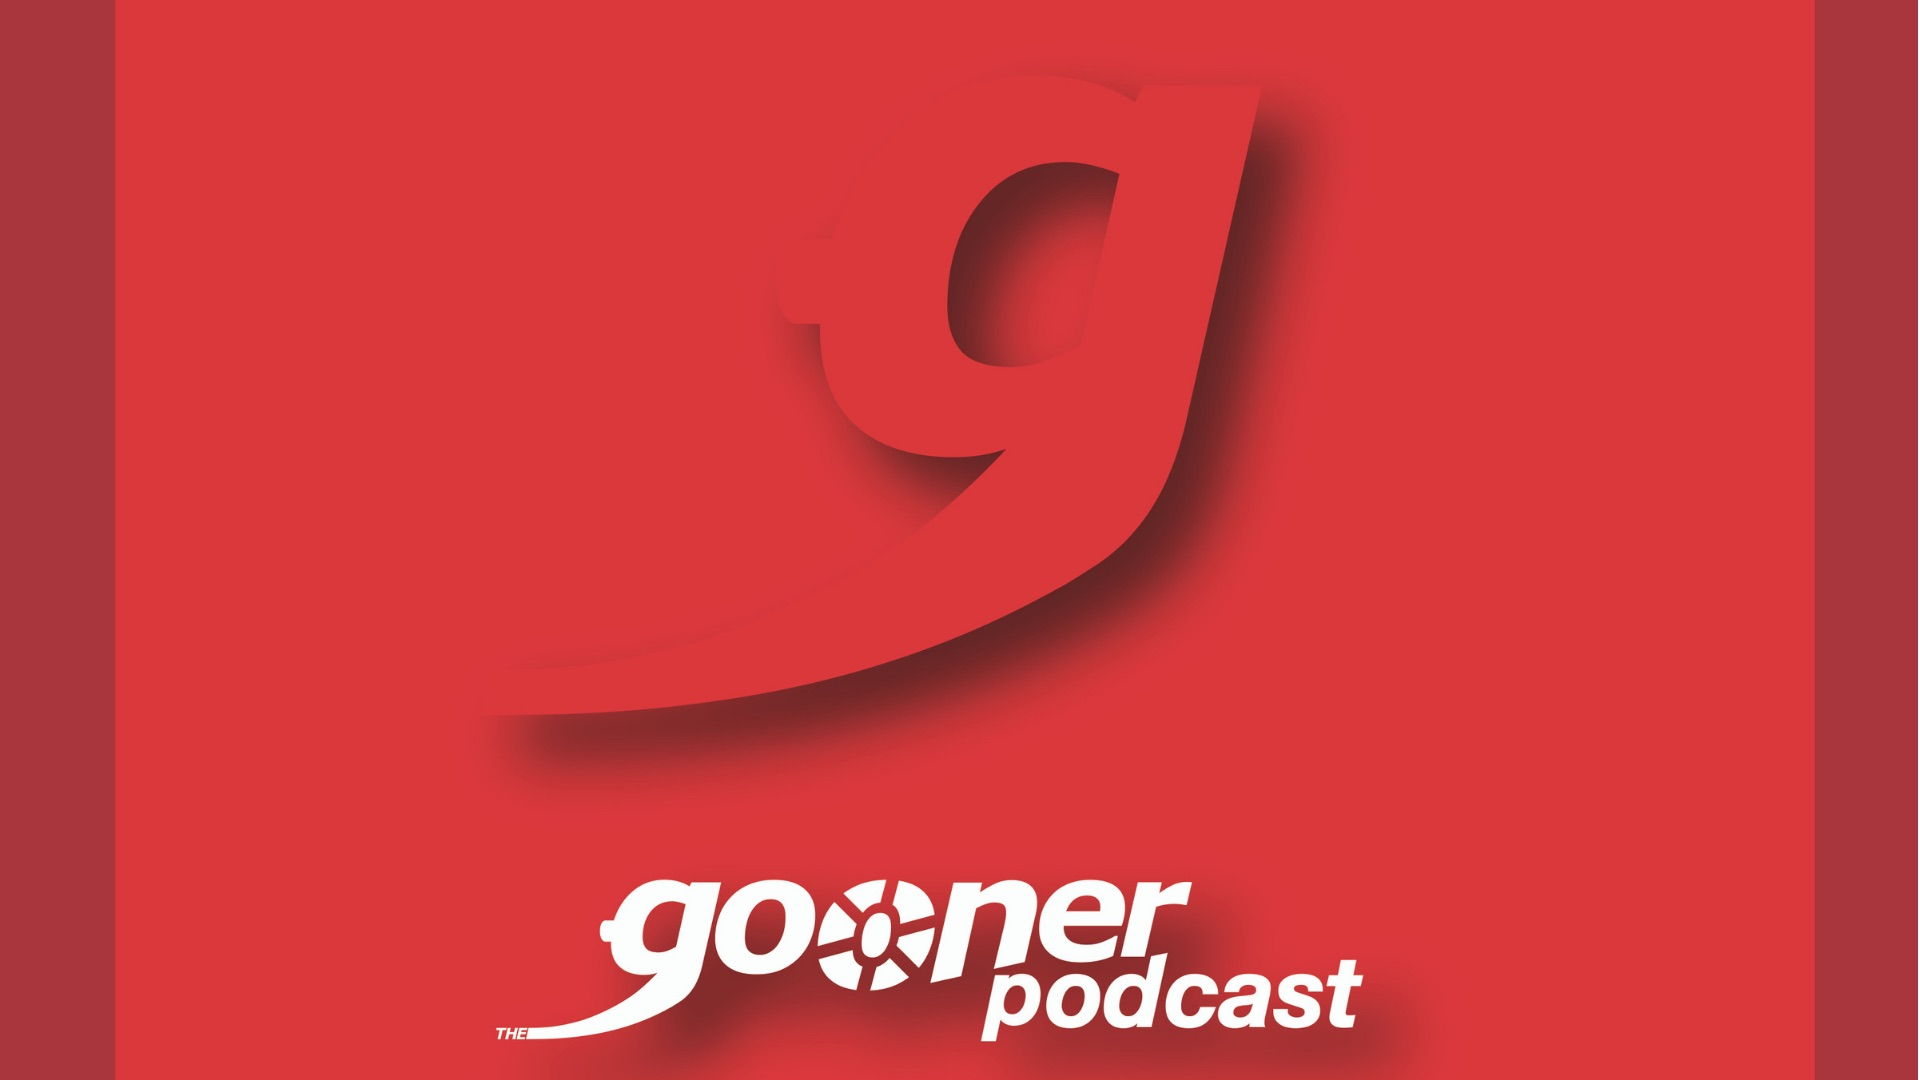 October Gooner Podcast now online